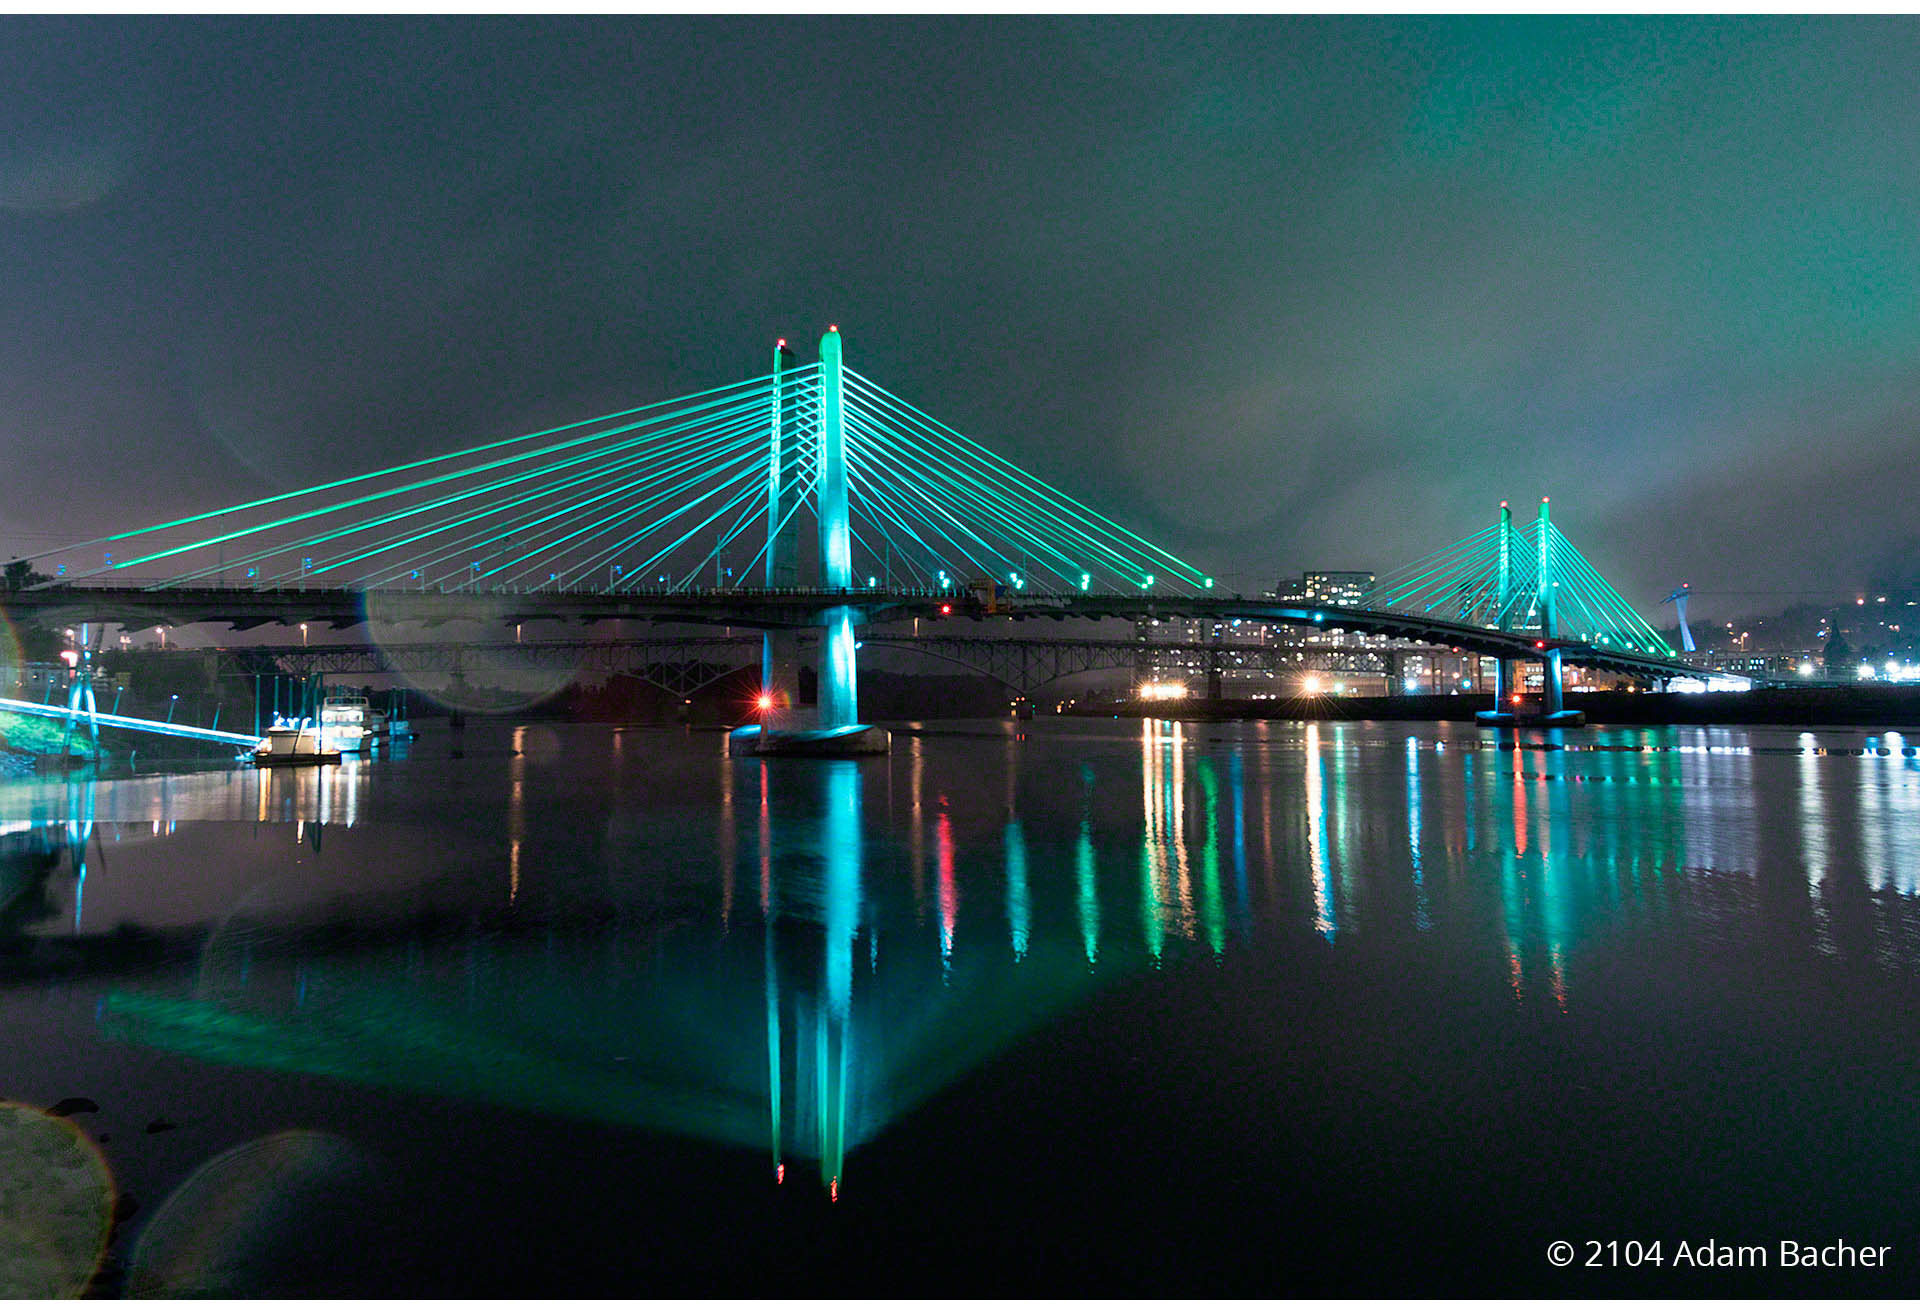 Tilikum Bridge by Portland Oregon architectural photographer